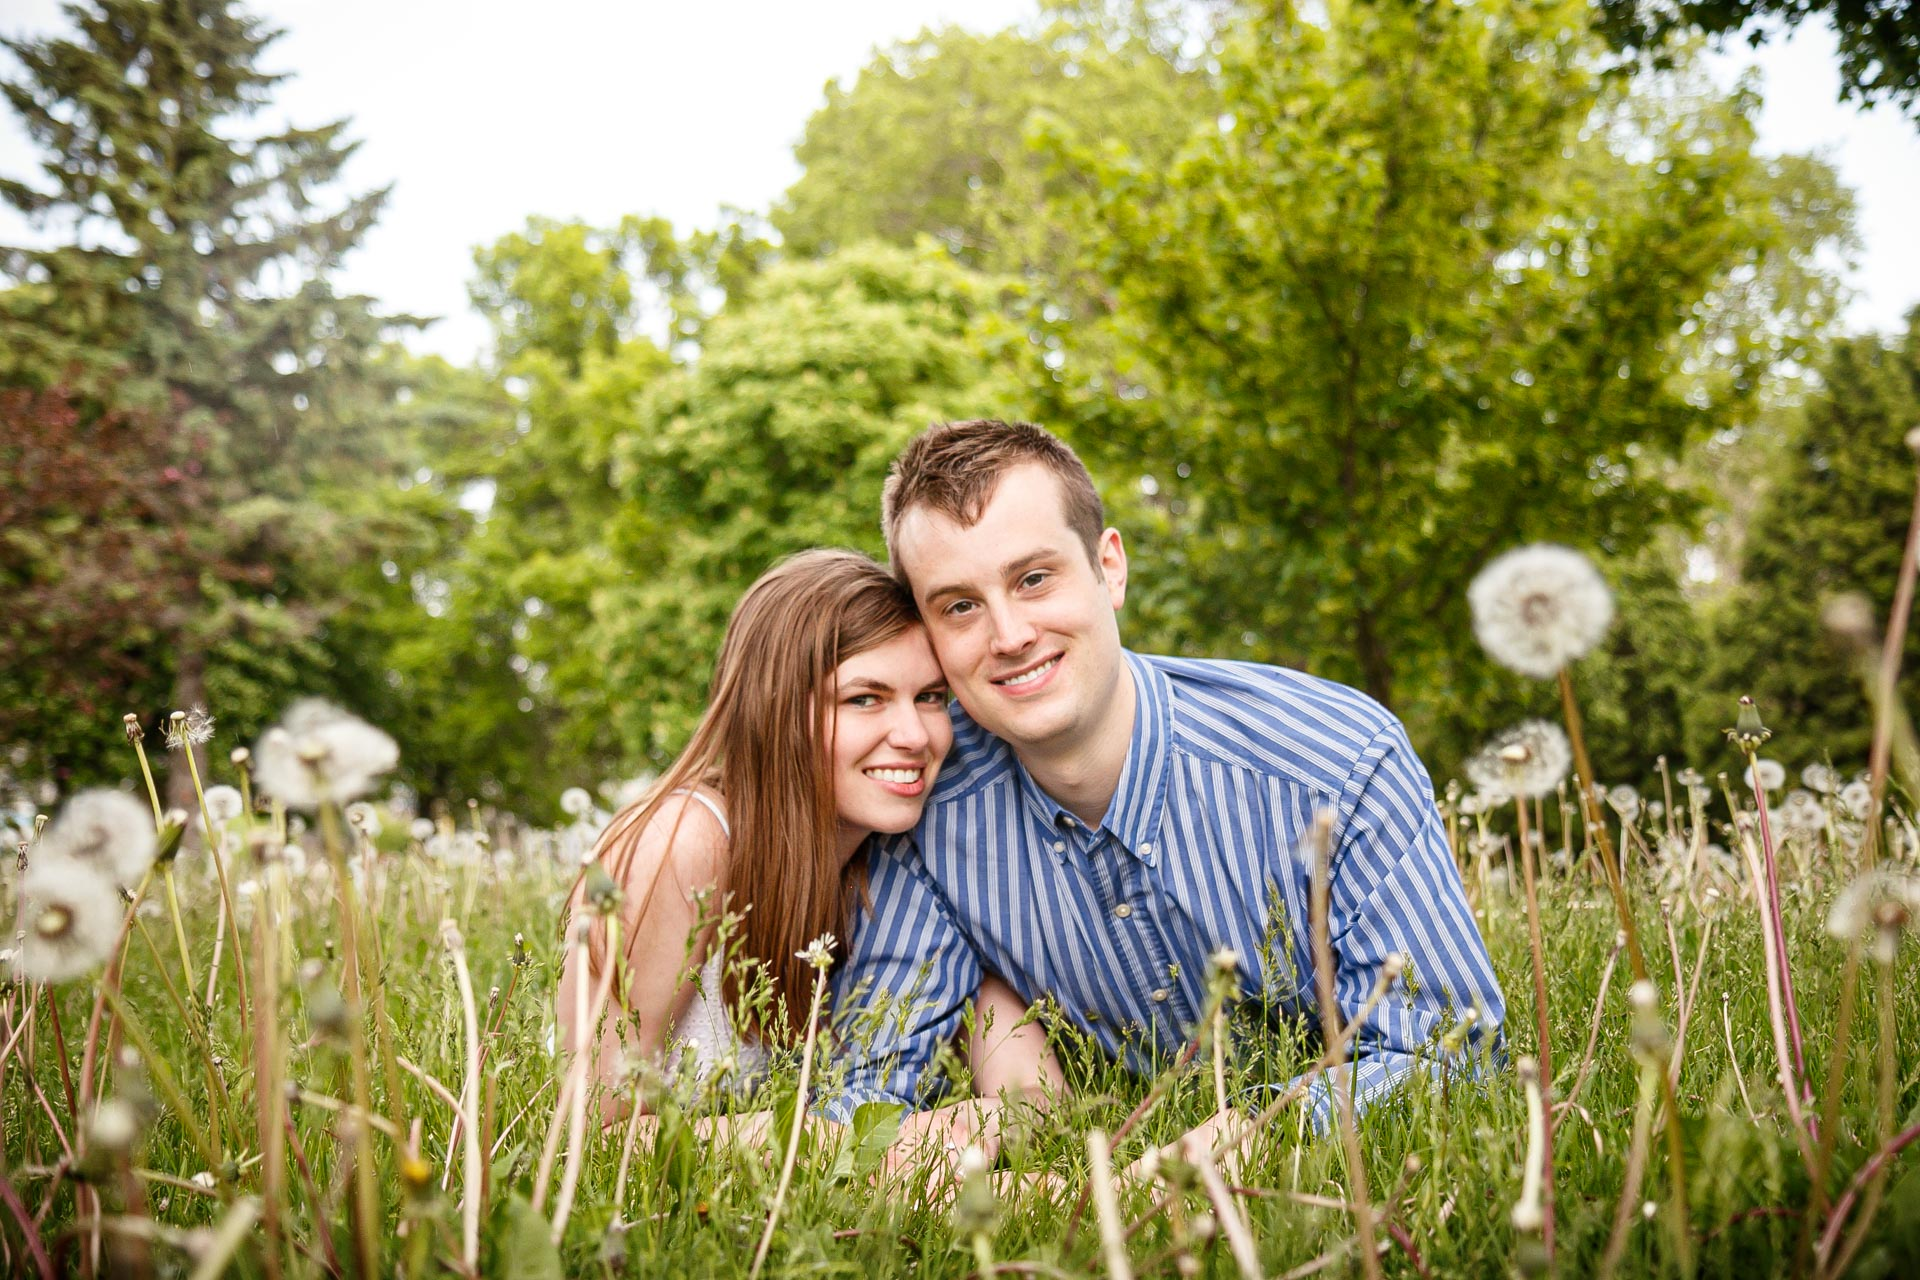 Nicole and Brandon accompanied me on a gorgeous evening at  Voyageur Park  in  De Pere, WI.